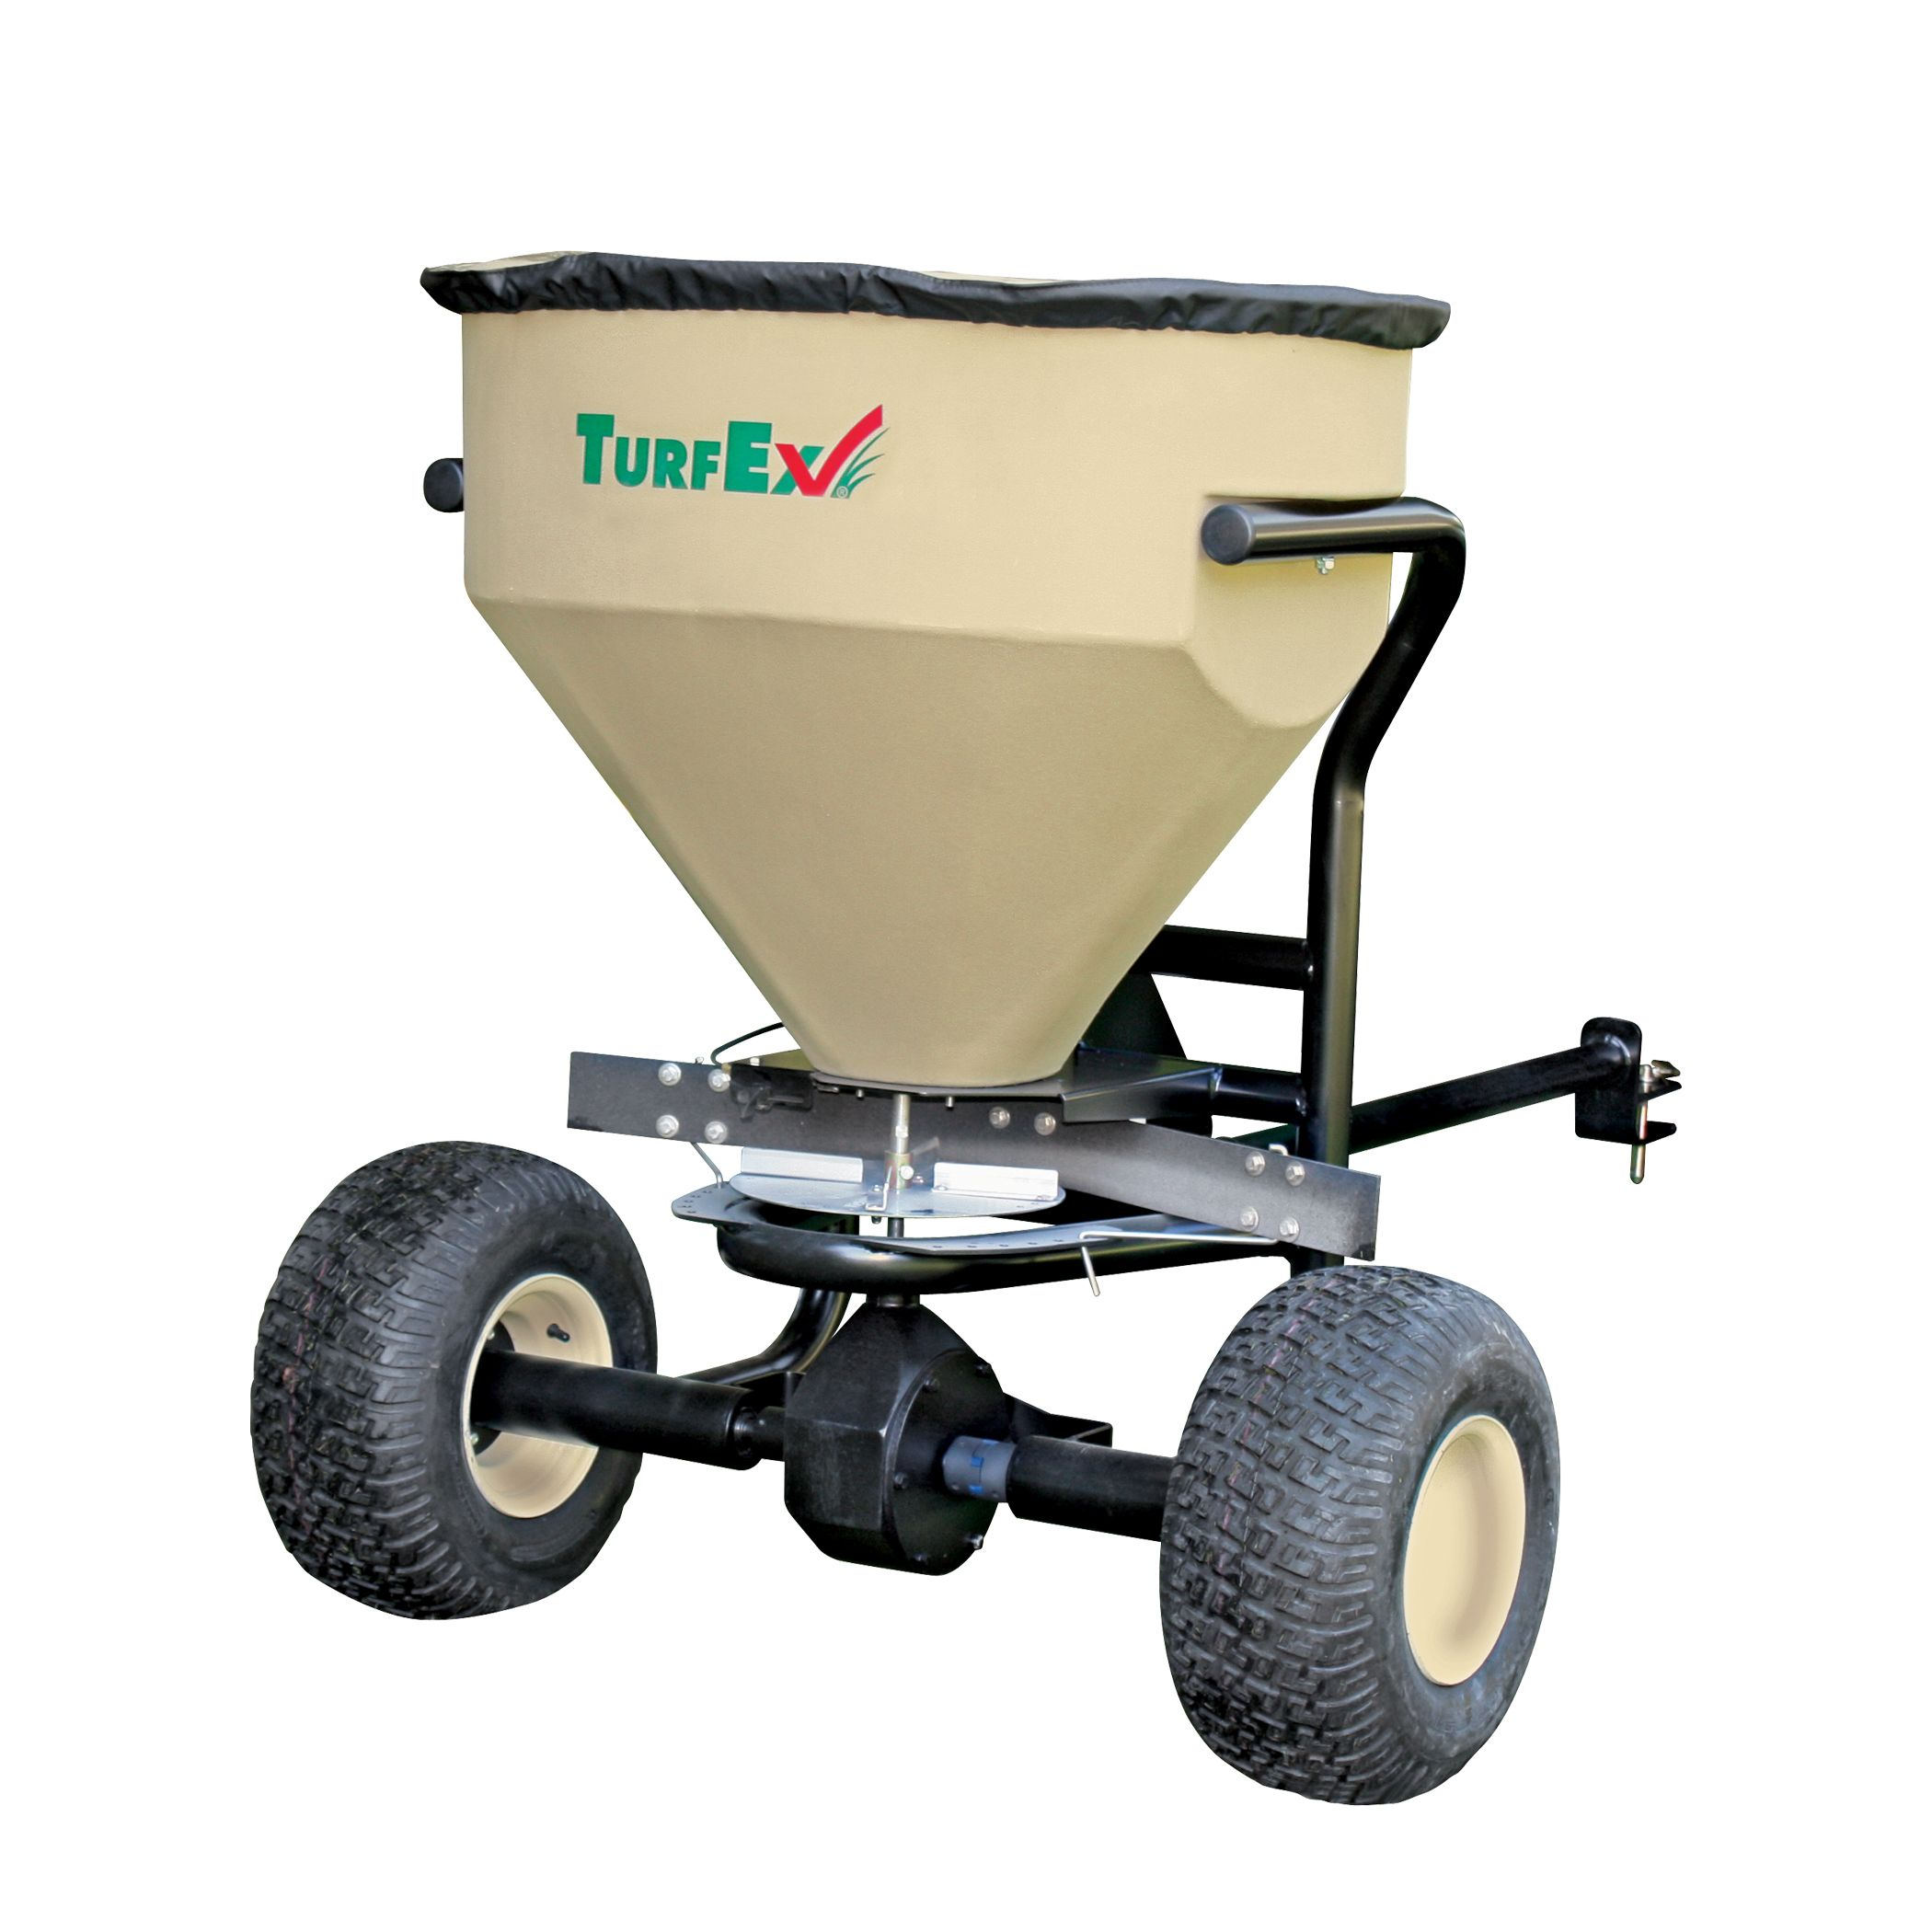 TurfEx Tow Behind Spreader TS1000GR